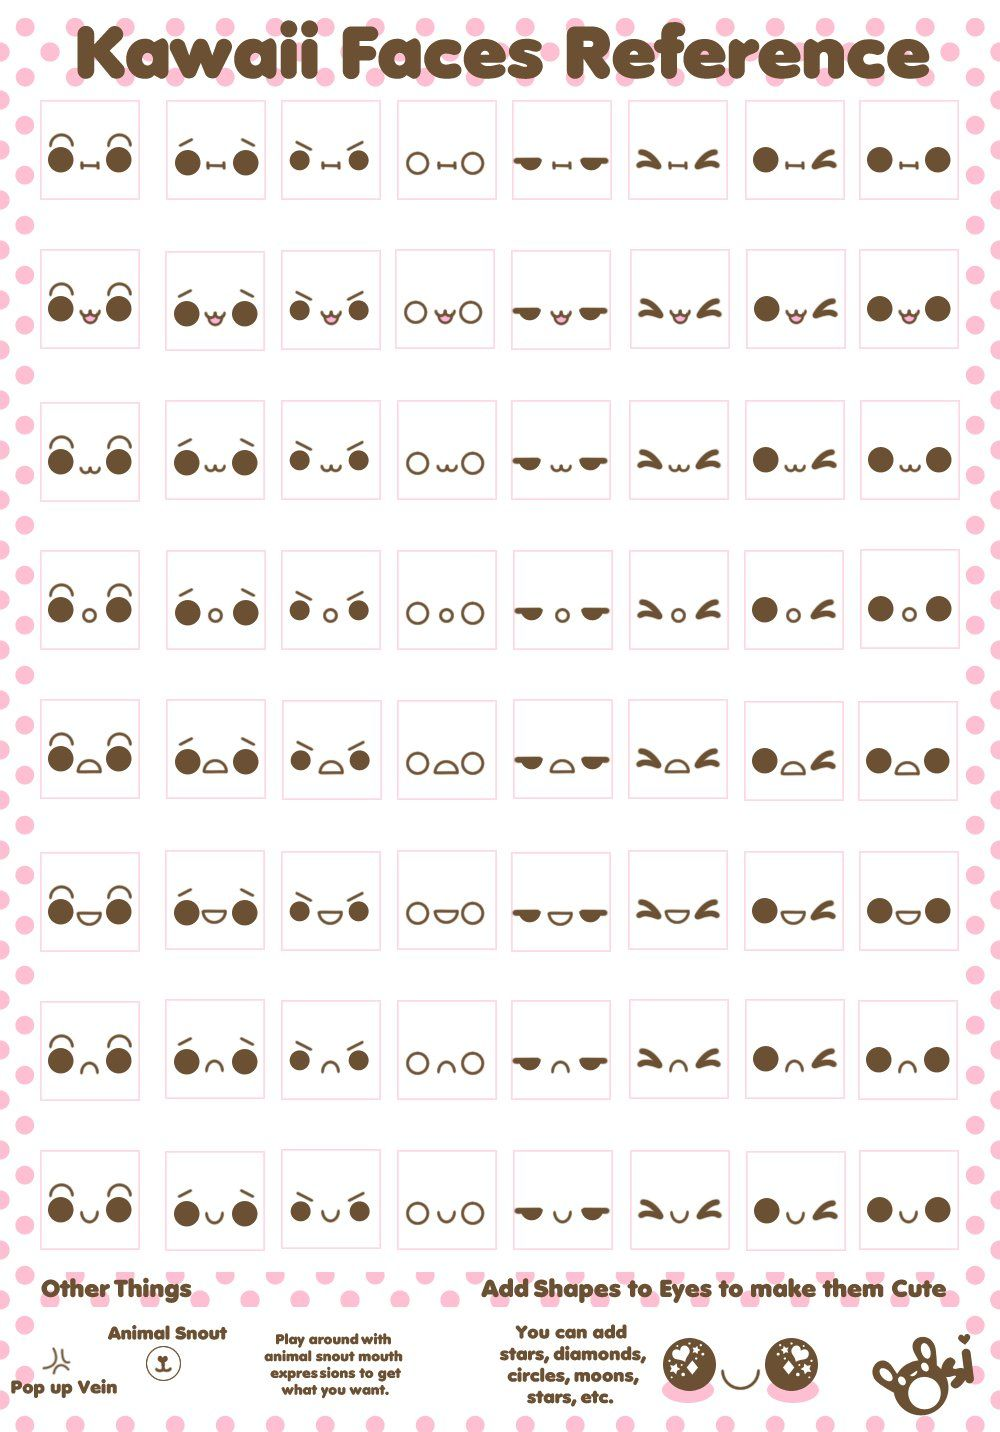 Kawaii Faces Reference By Sugarlette How To Draw